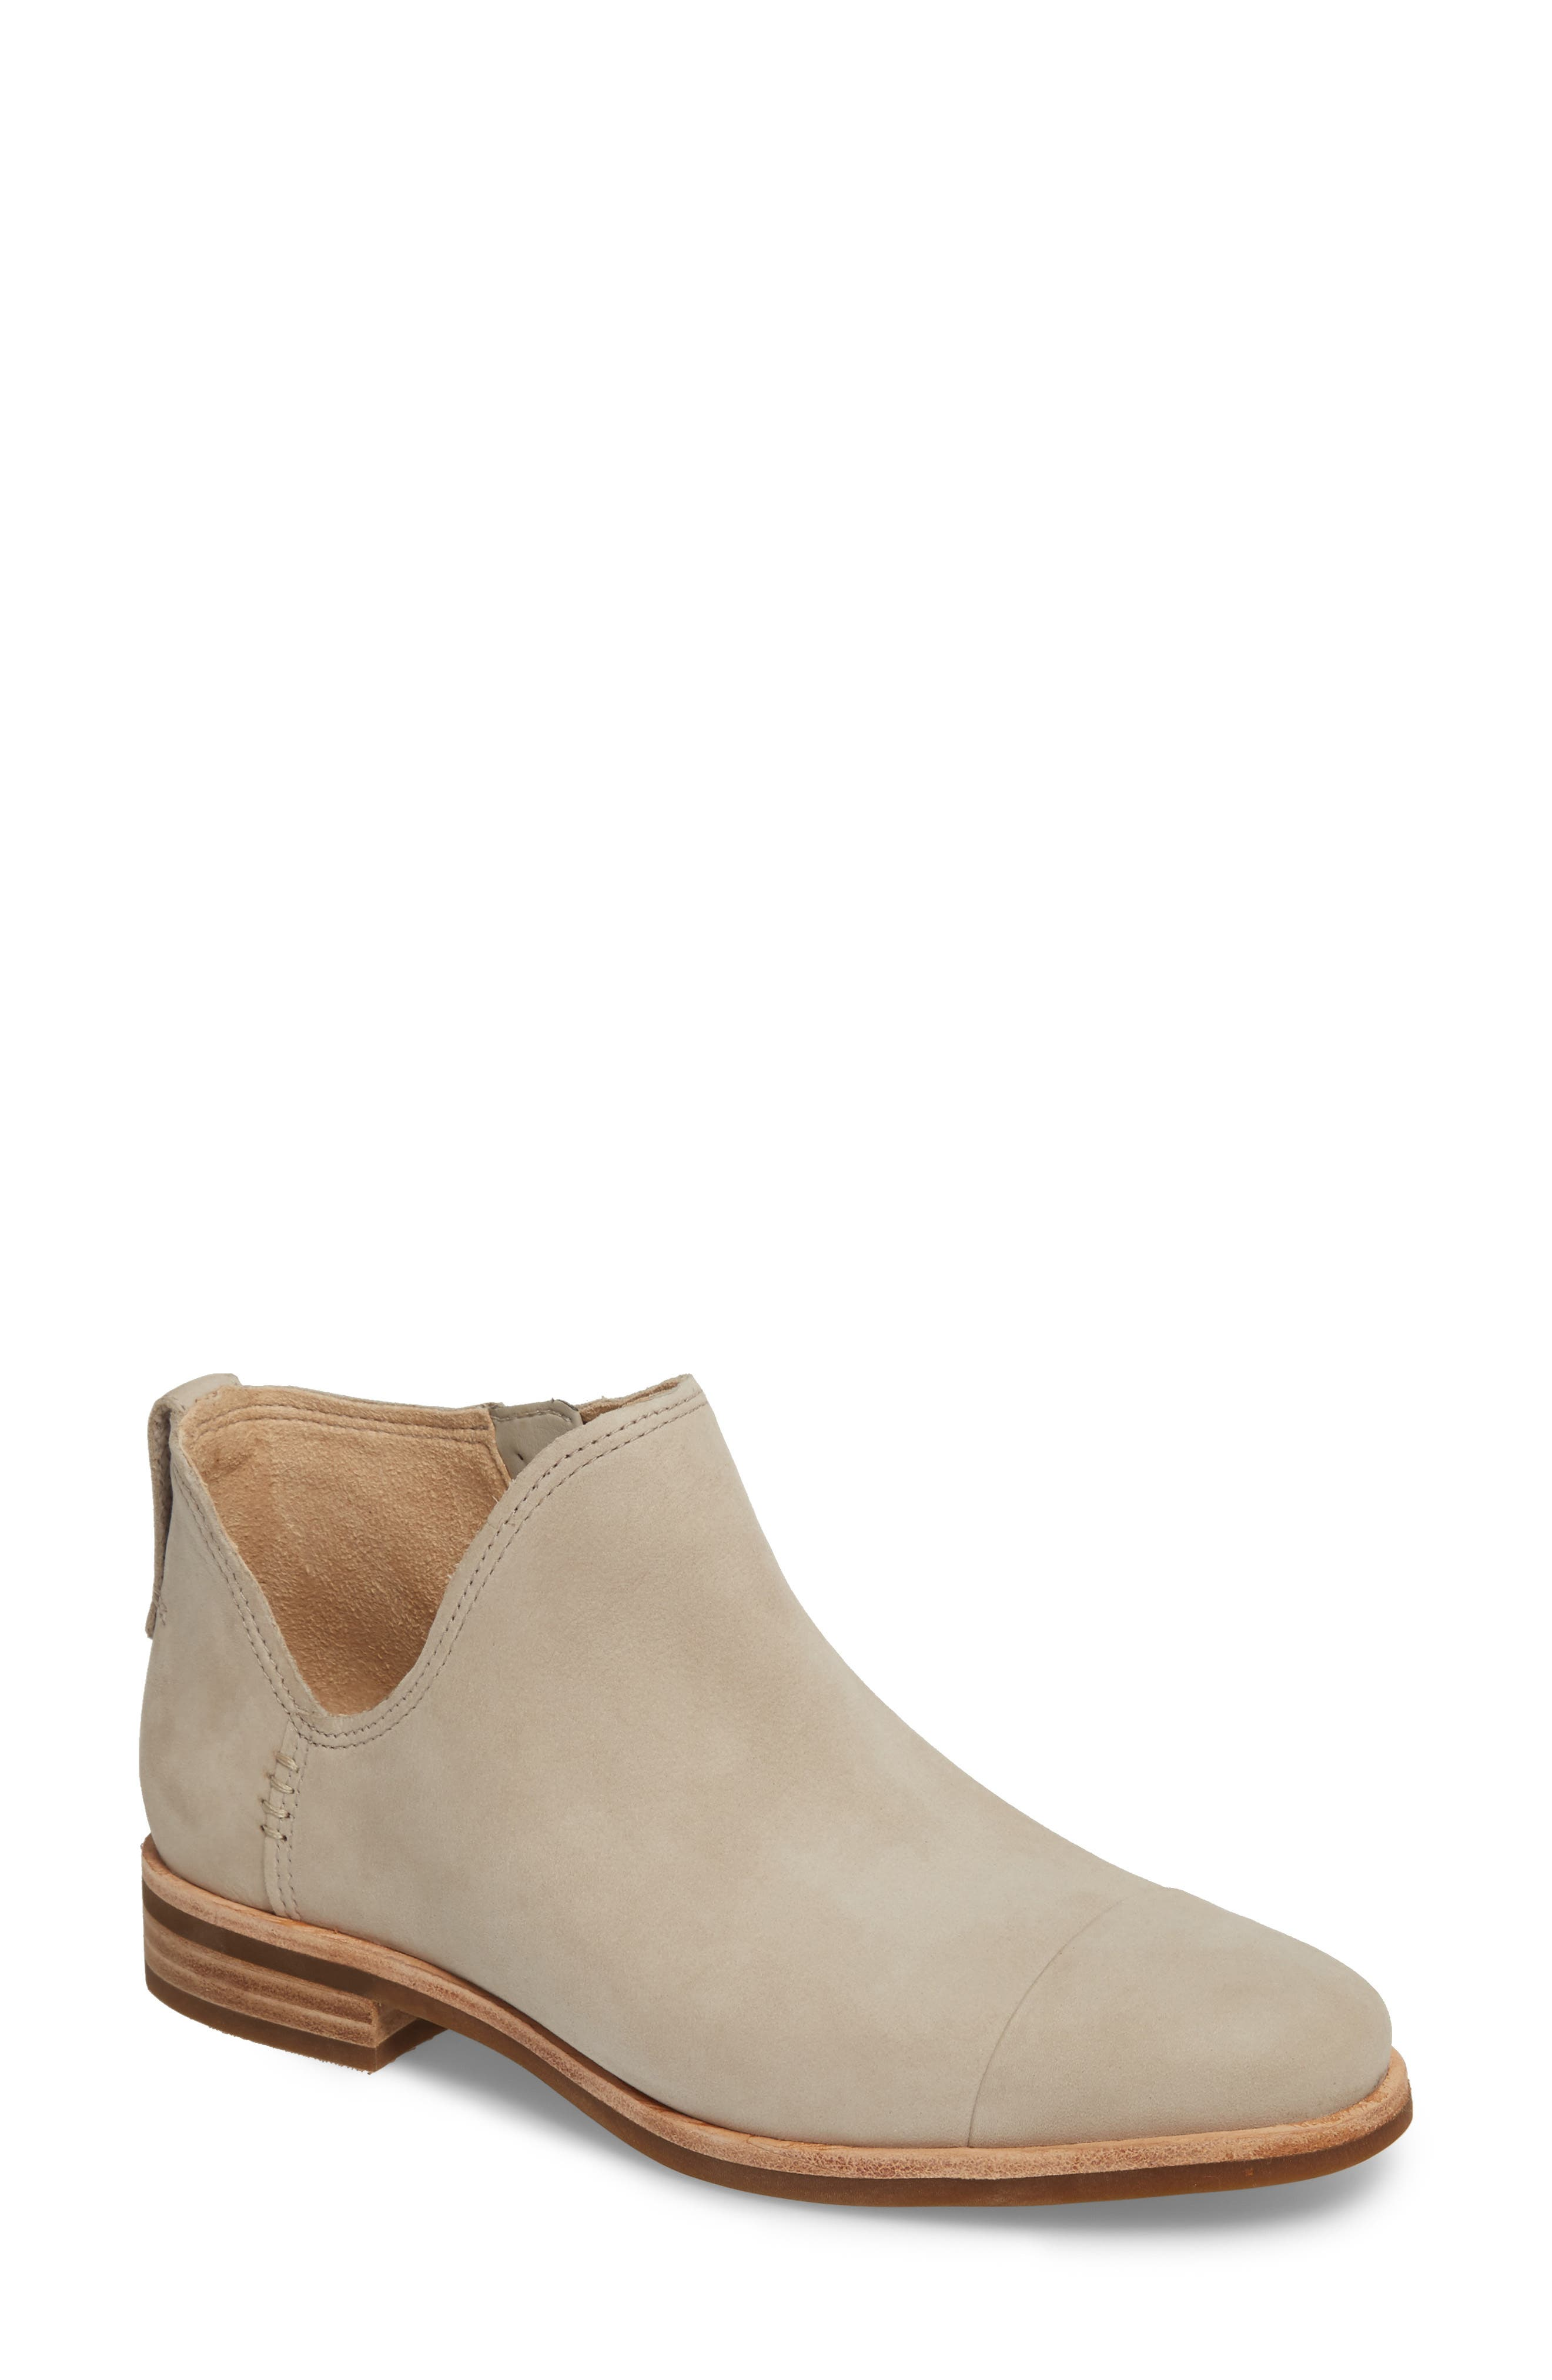 Somers Falls Short Ankle Bootie,                         Main,                         color, Light Taupe Nubuck Leather